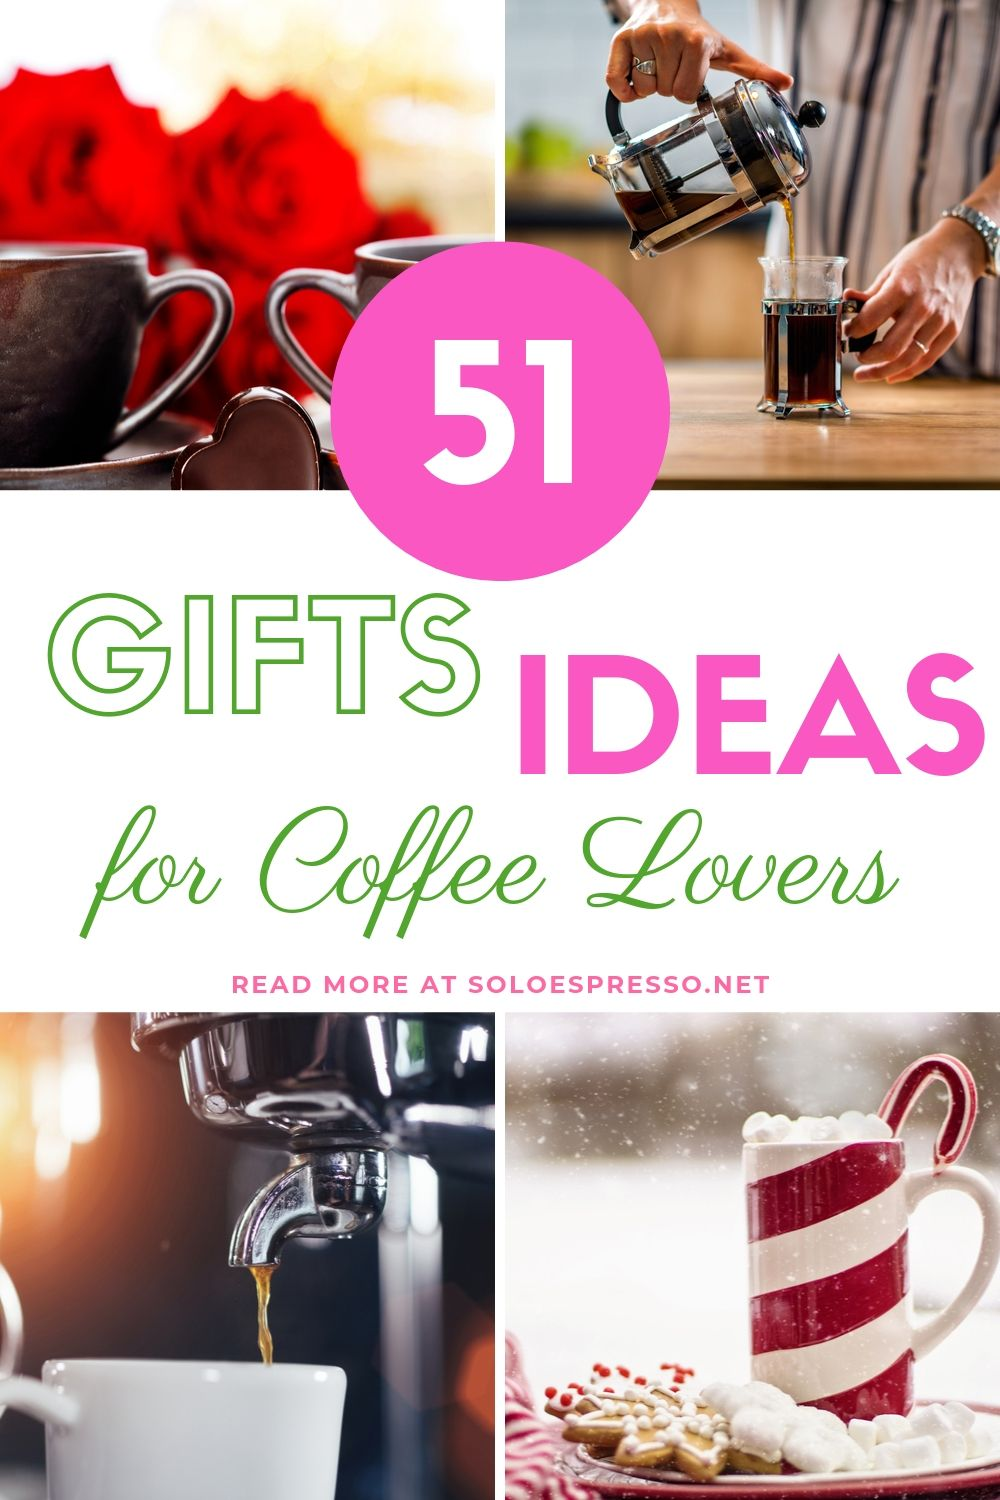 51 Awesome Gifts for Coffee Lovers | Coffee lover gifts ...